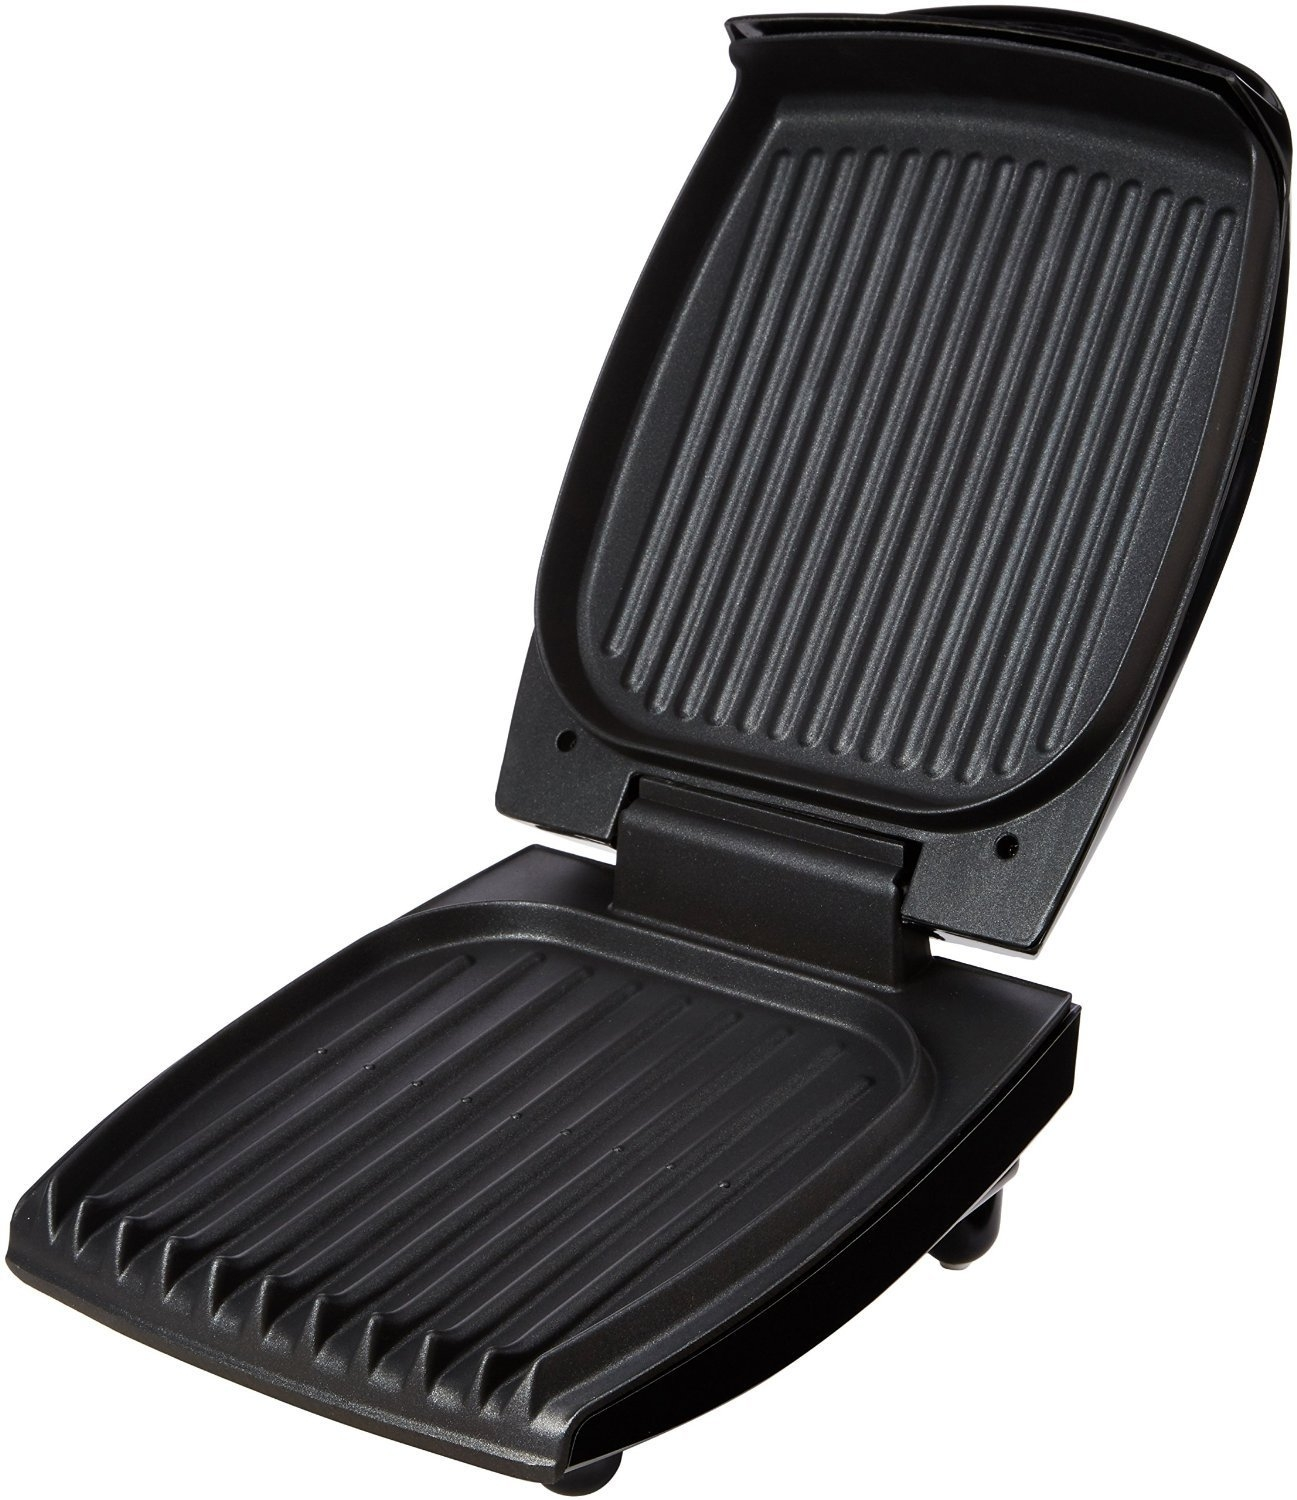 Black NEW George Foreman 18471 Four Portion Family Grill